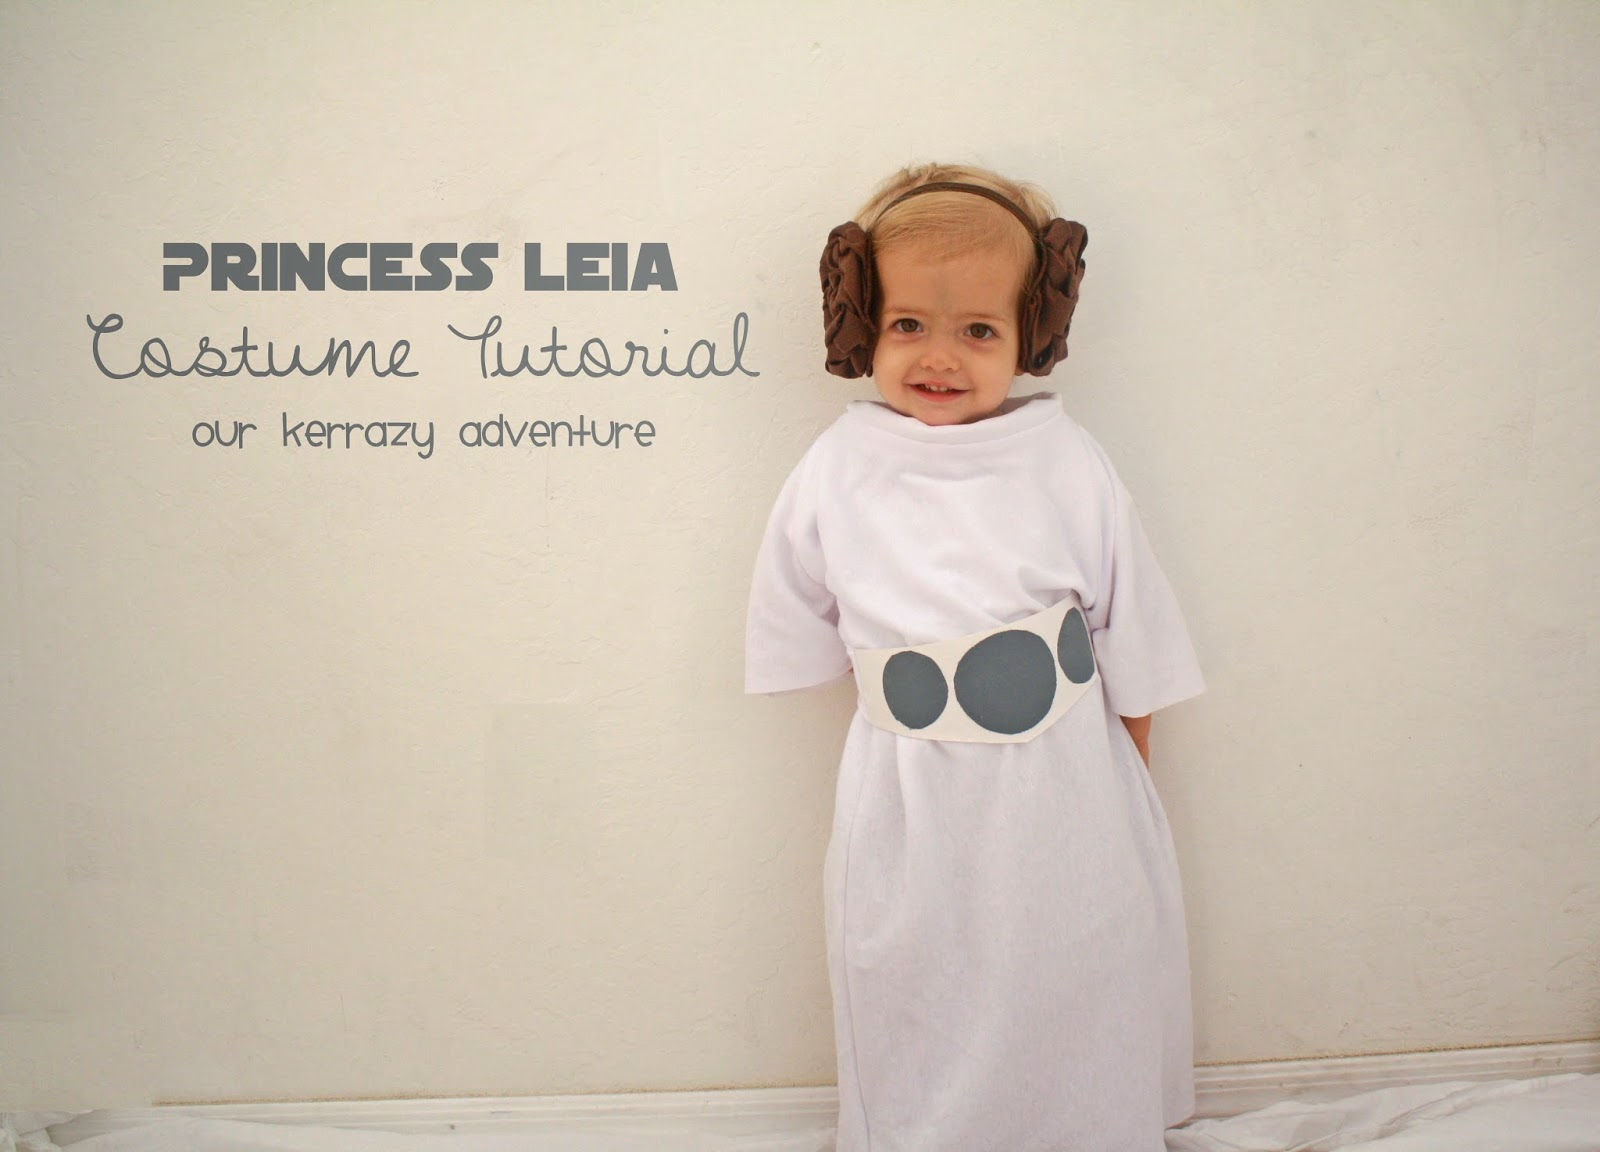 Princess Leia Costume Tutorial Our Kerrazy Adventure